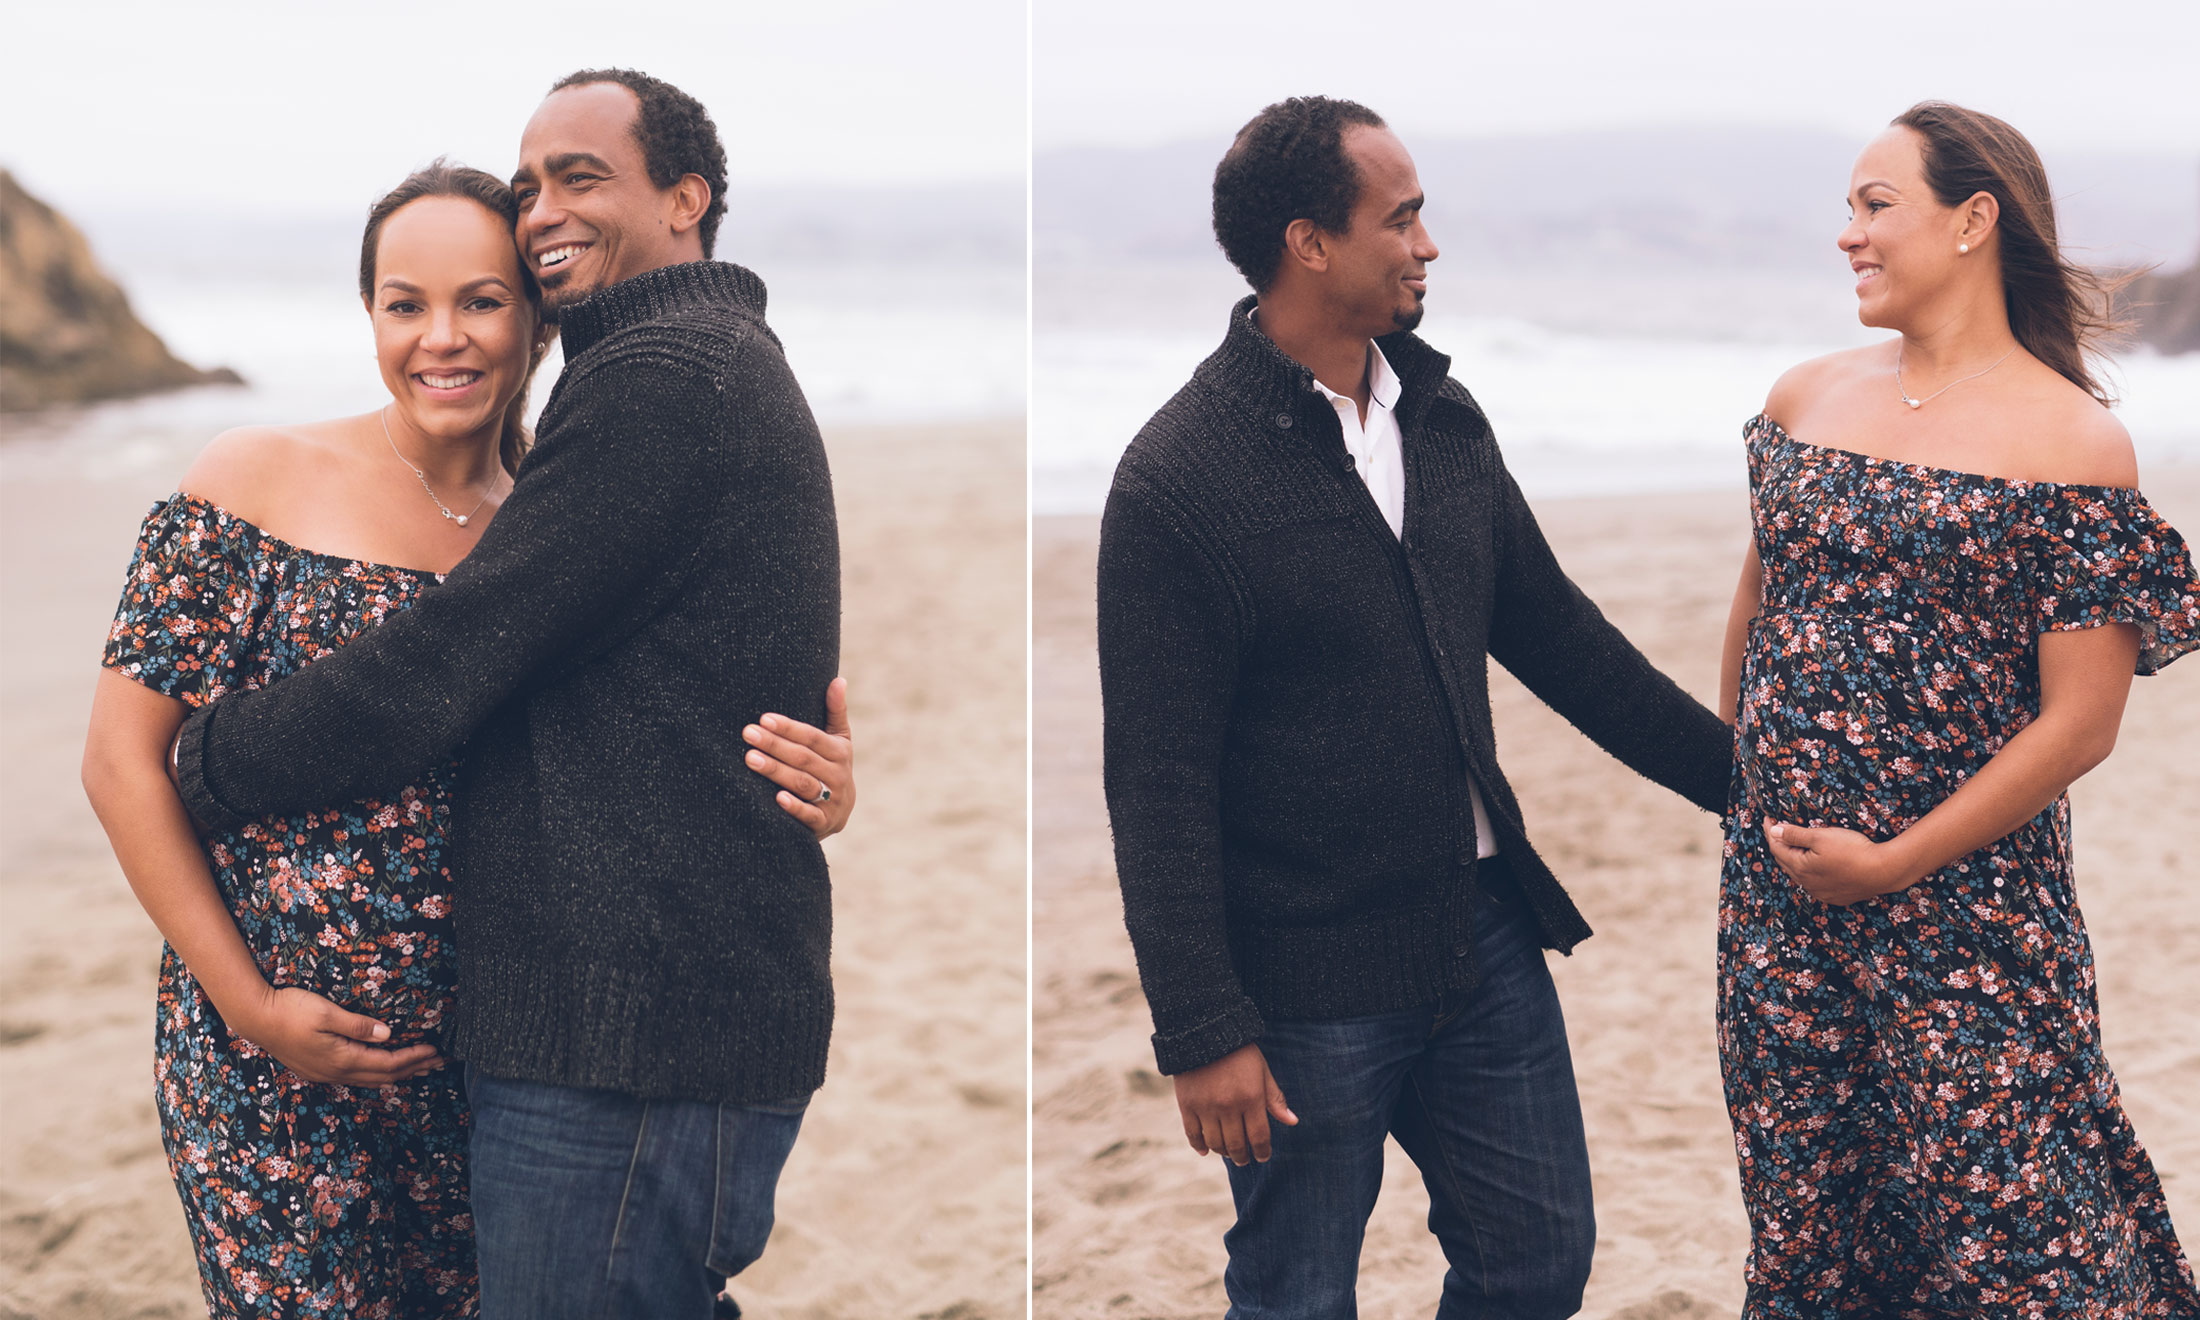 san-francisco-beach-maternity-photo-session.jpg